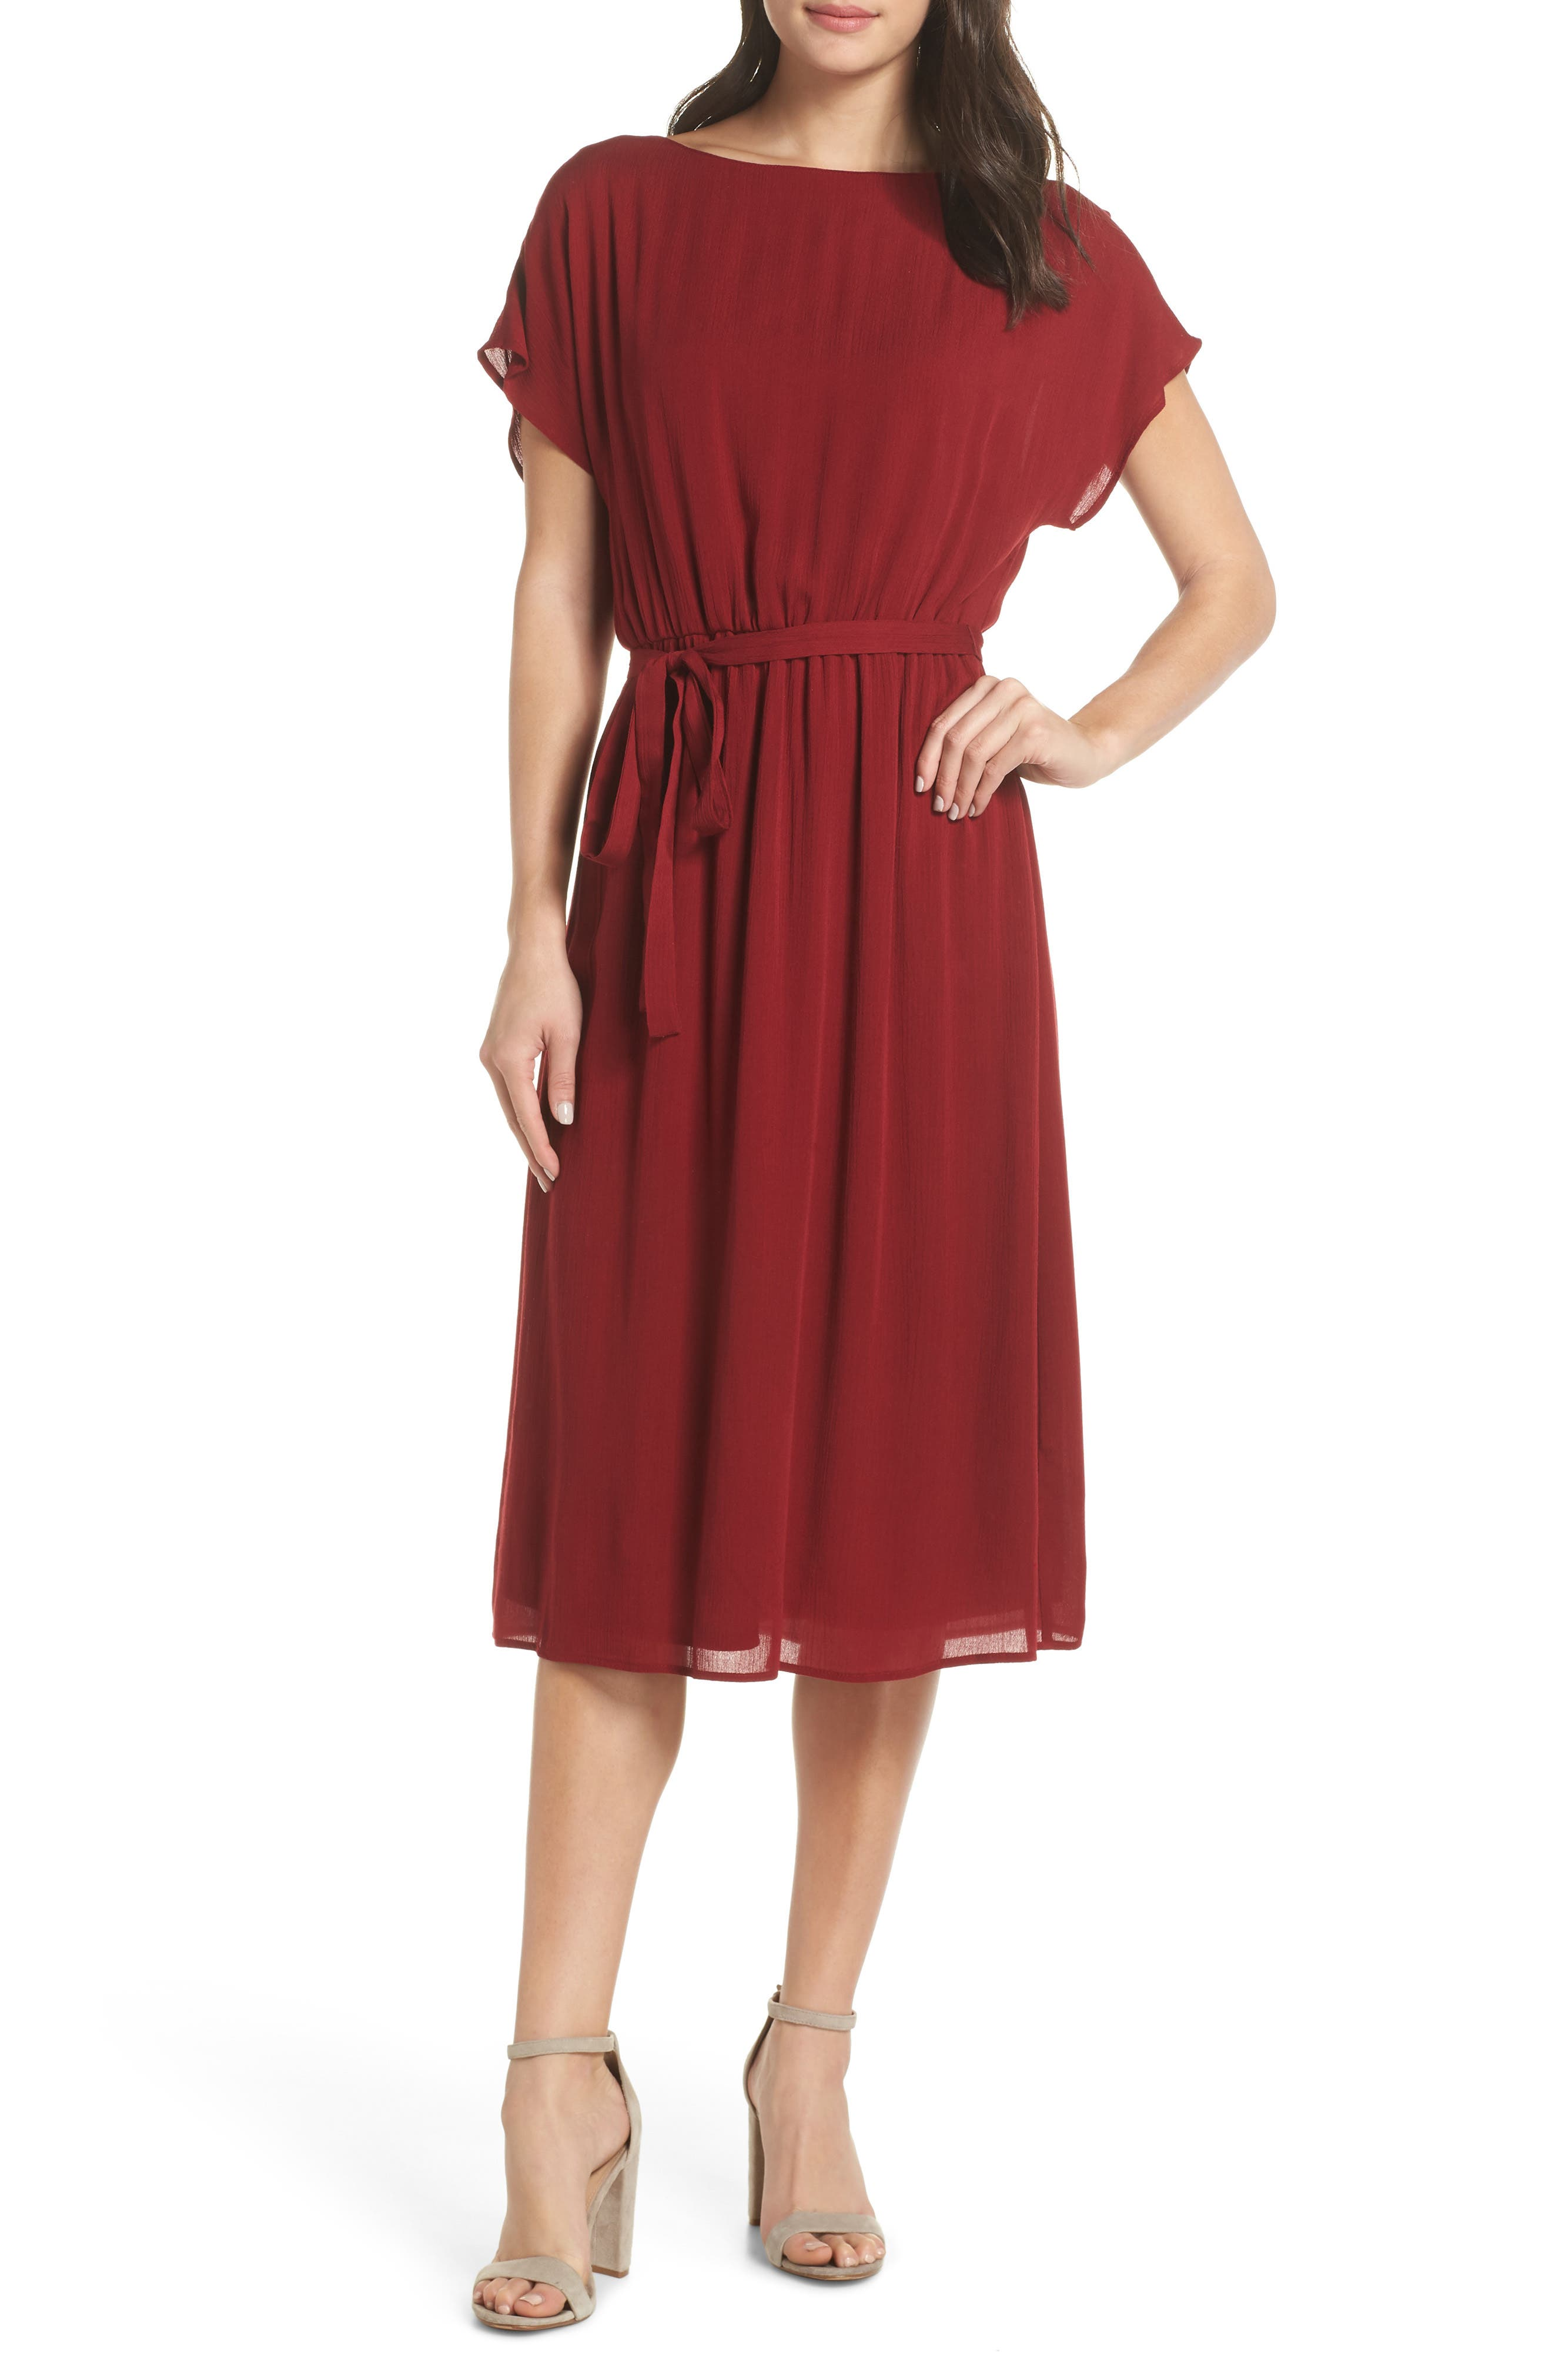 CHARLES HENRY Dolman Midi Dress in Burgundy